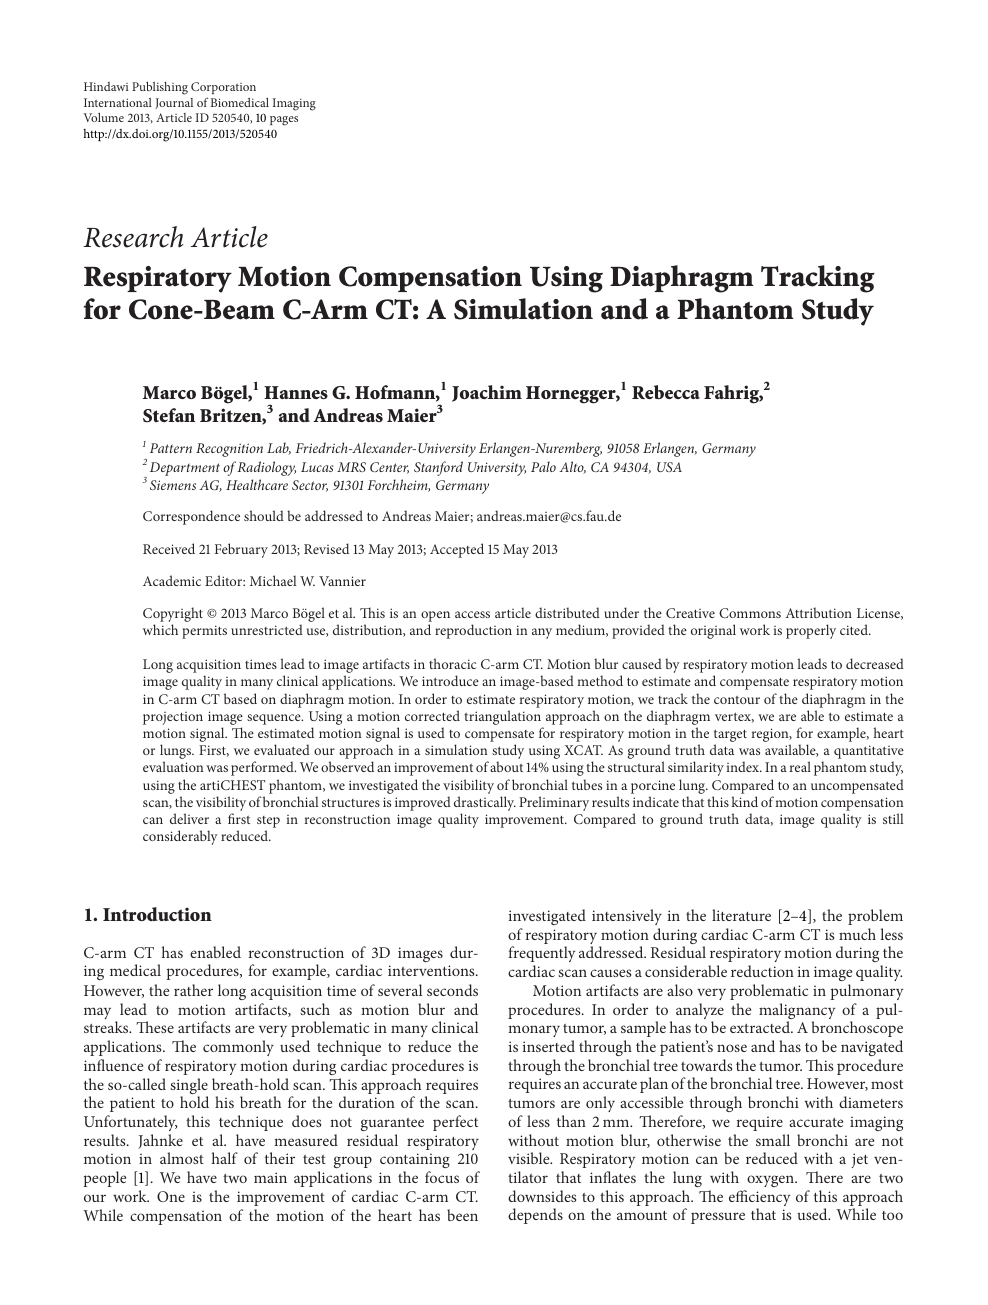 Respiratory Motion Compensation Using Diaphragm Tracking for